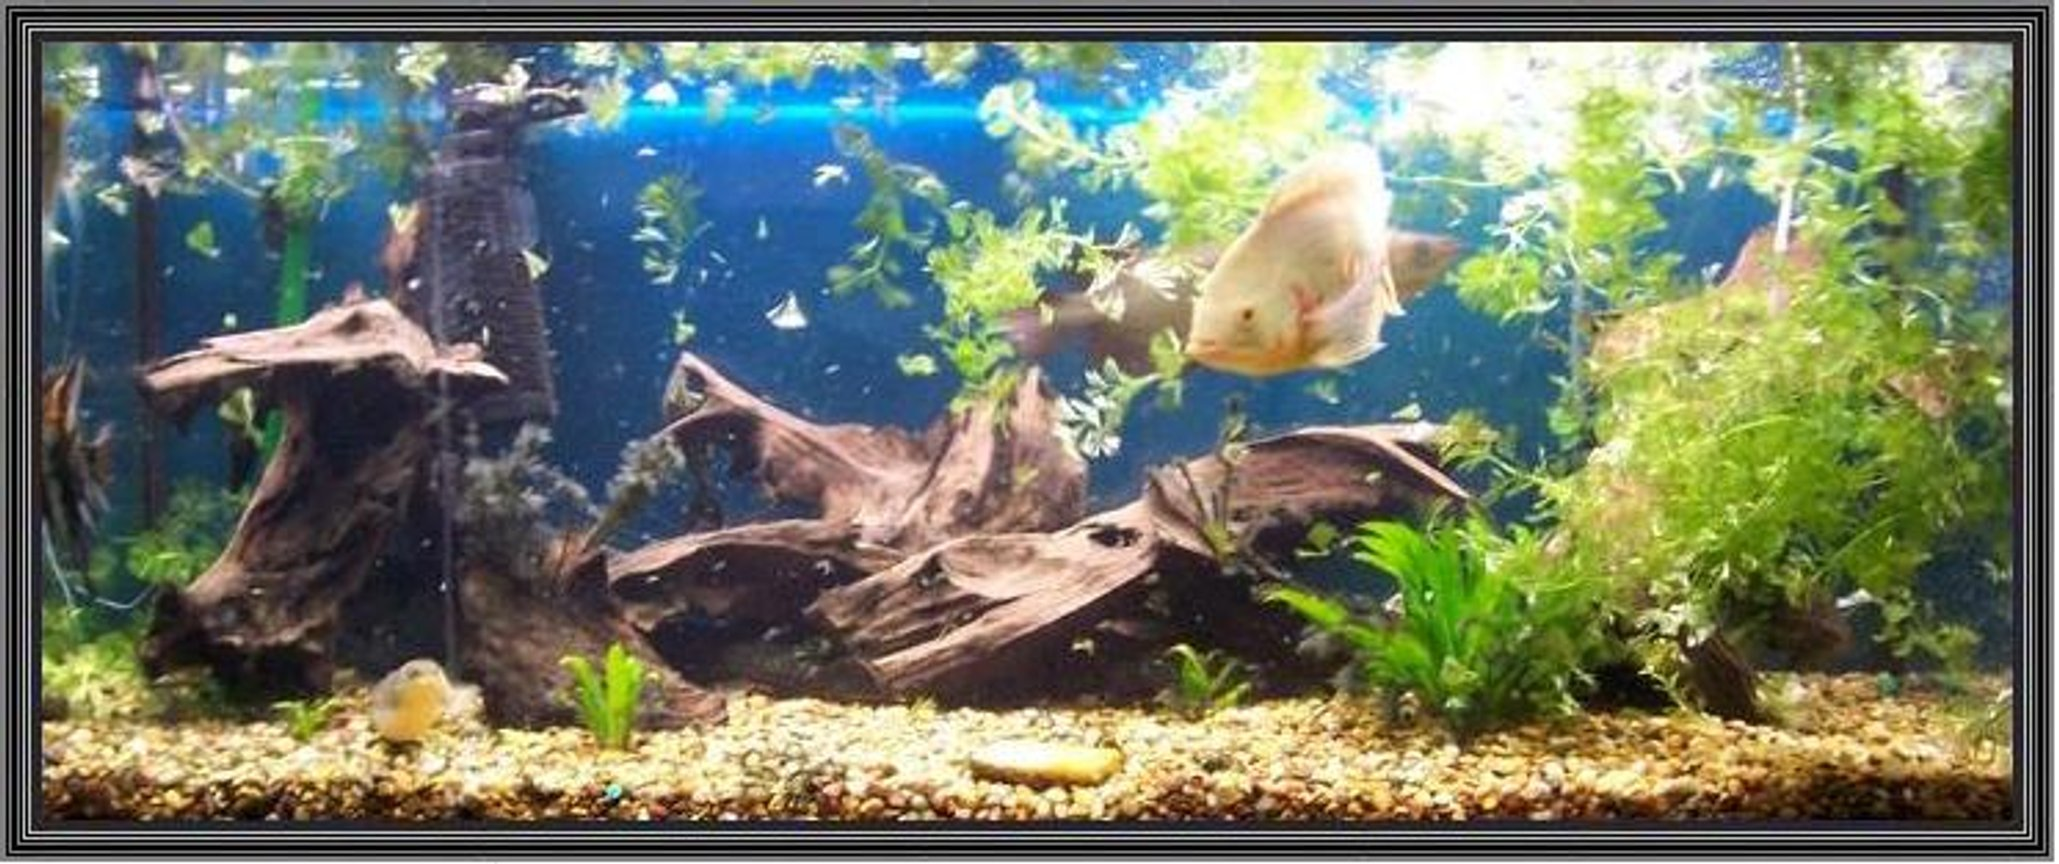 120 gallons freshwater fish tank (mostly fish and non-living decorations) - 75g